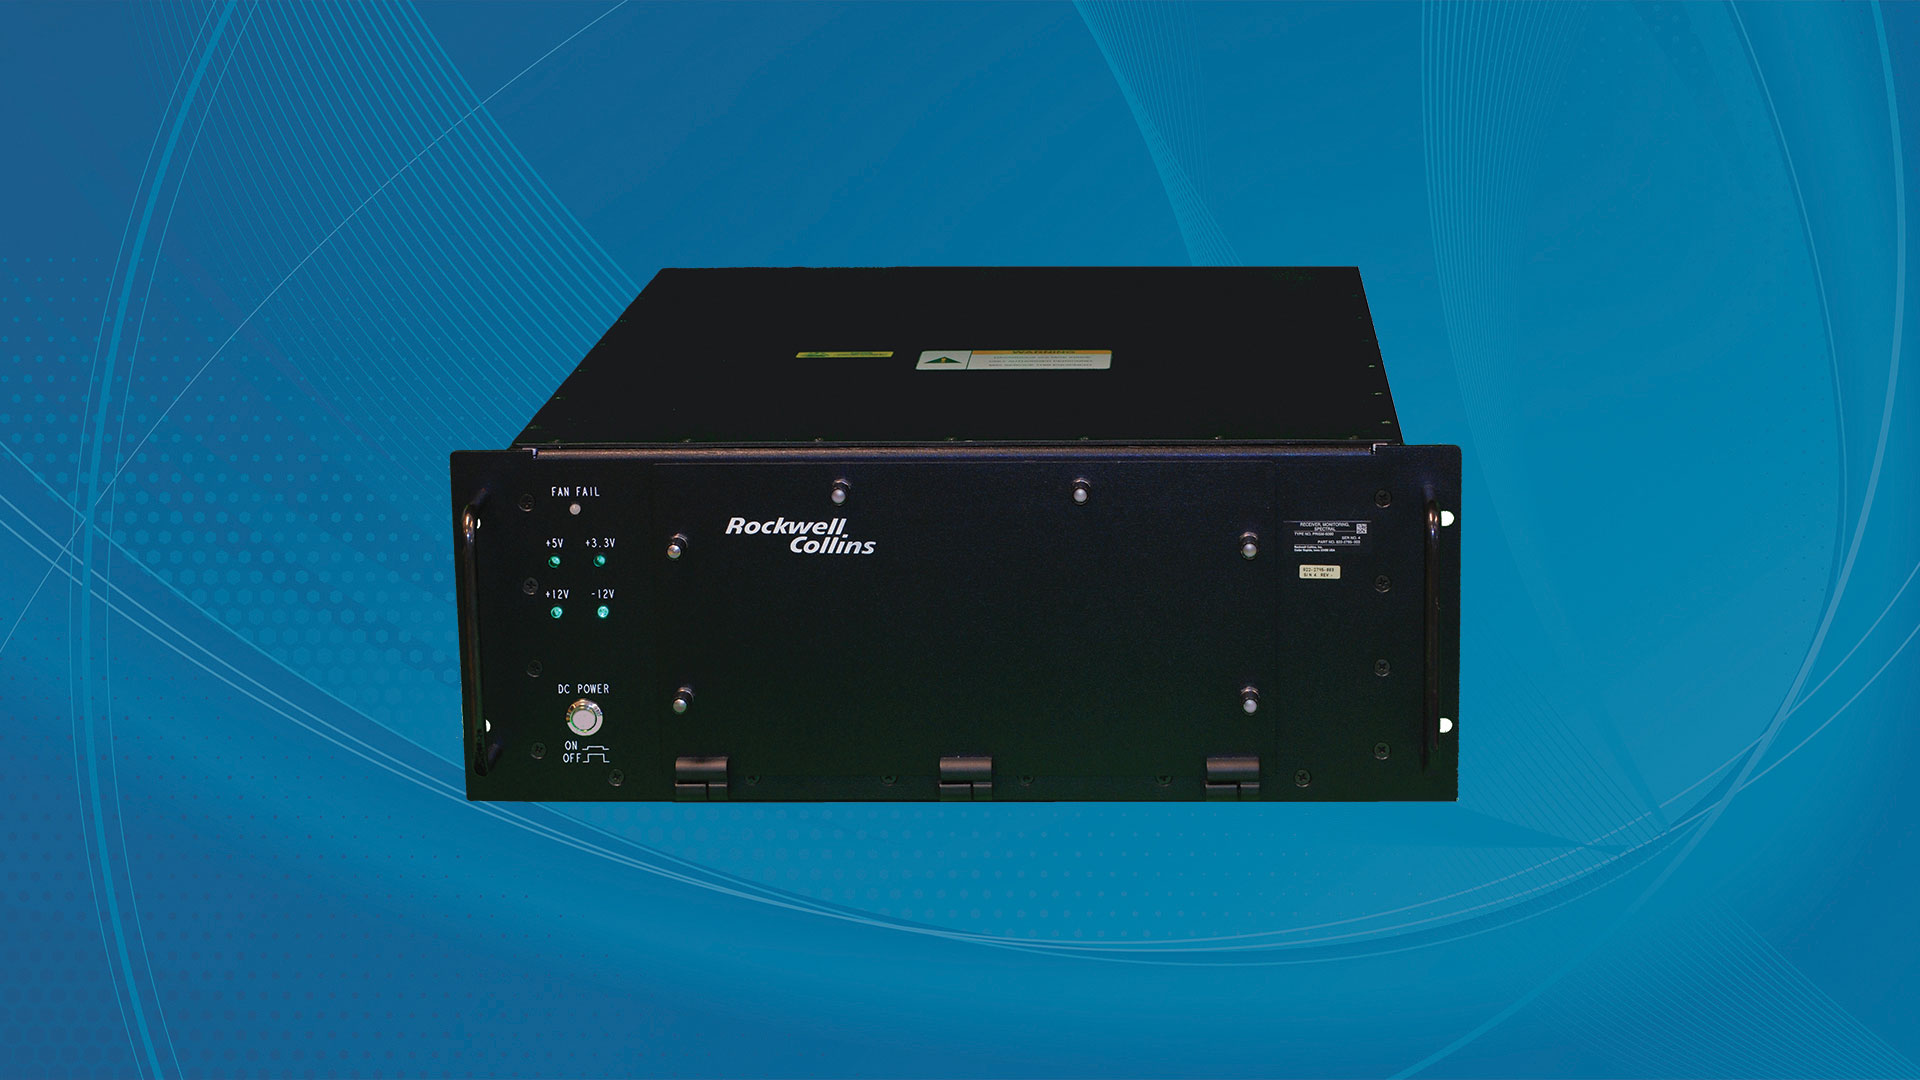 PRISM-6090 Precision Intercept Spectral Monitoring System